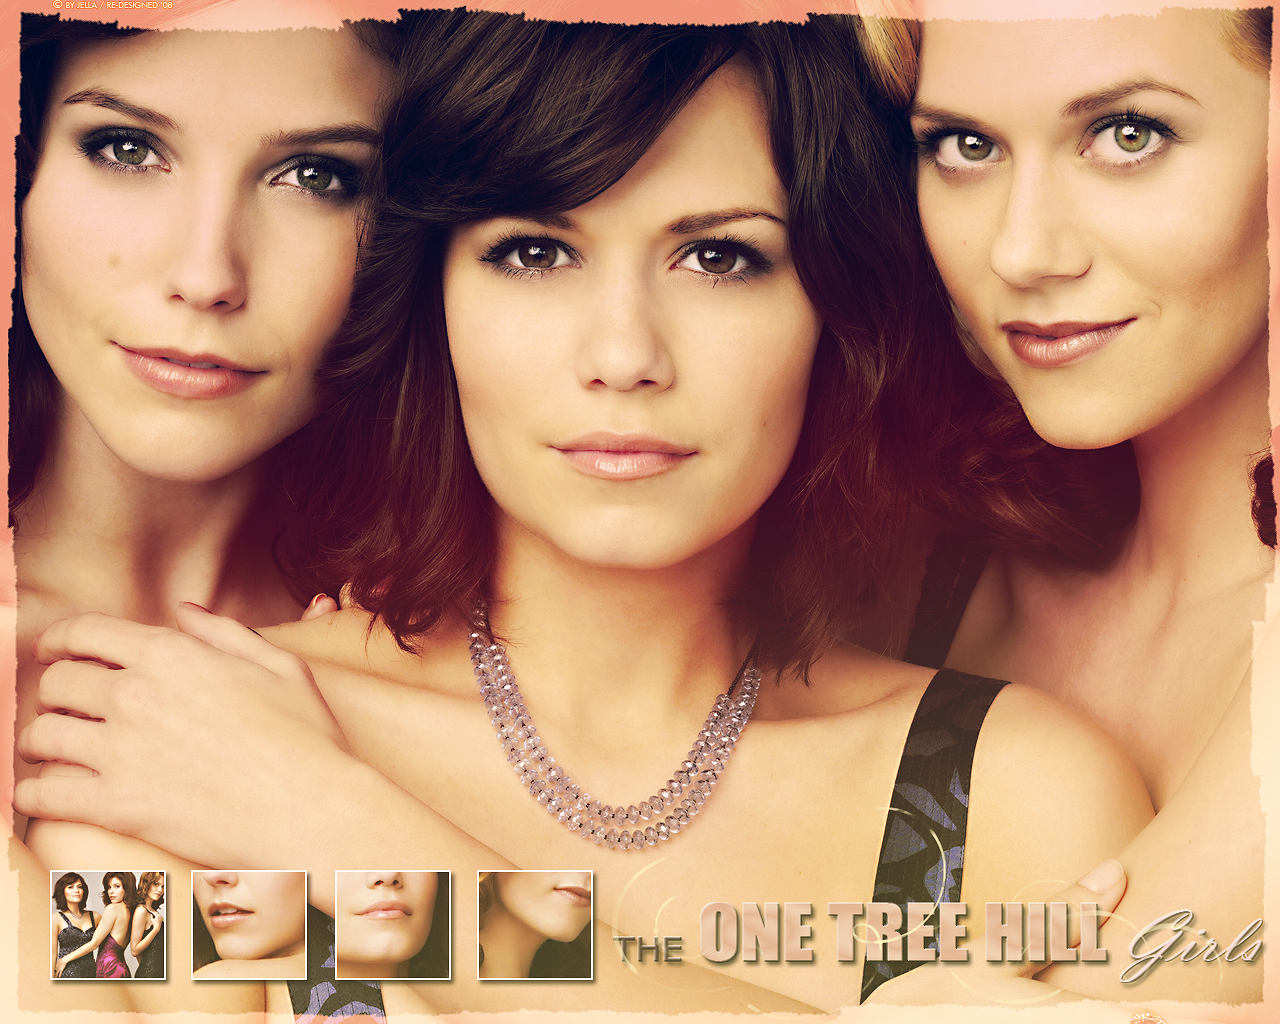 One Tree Hill girls by Re-Designed